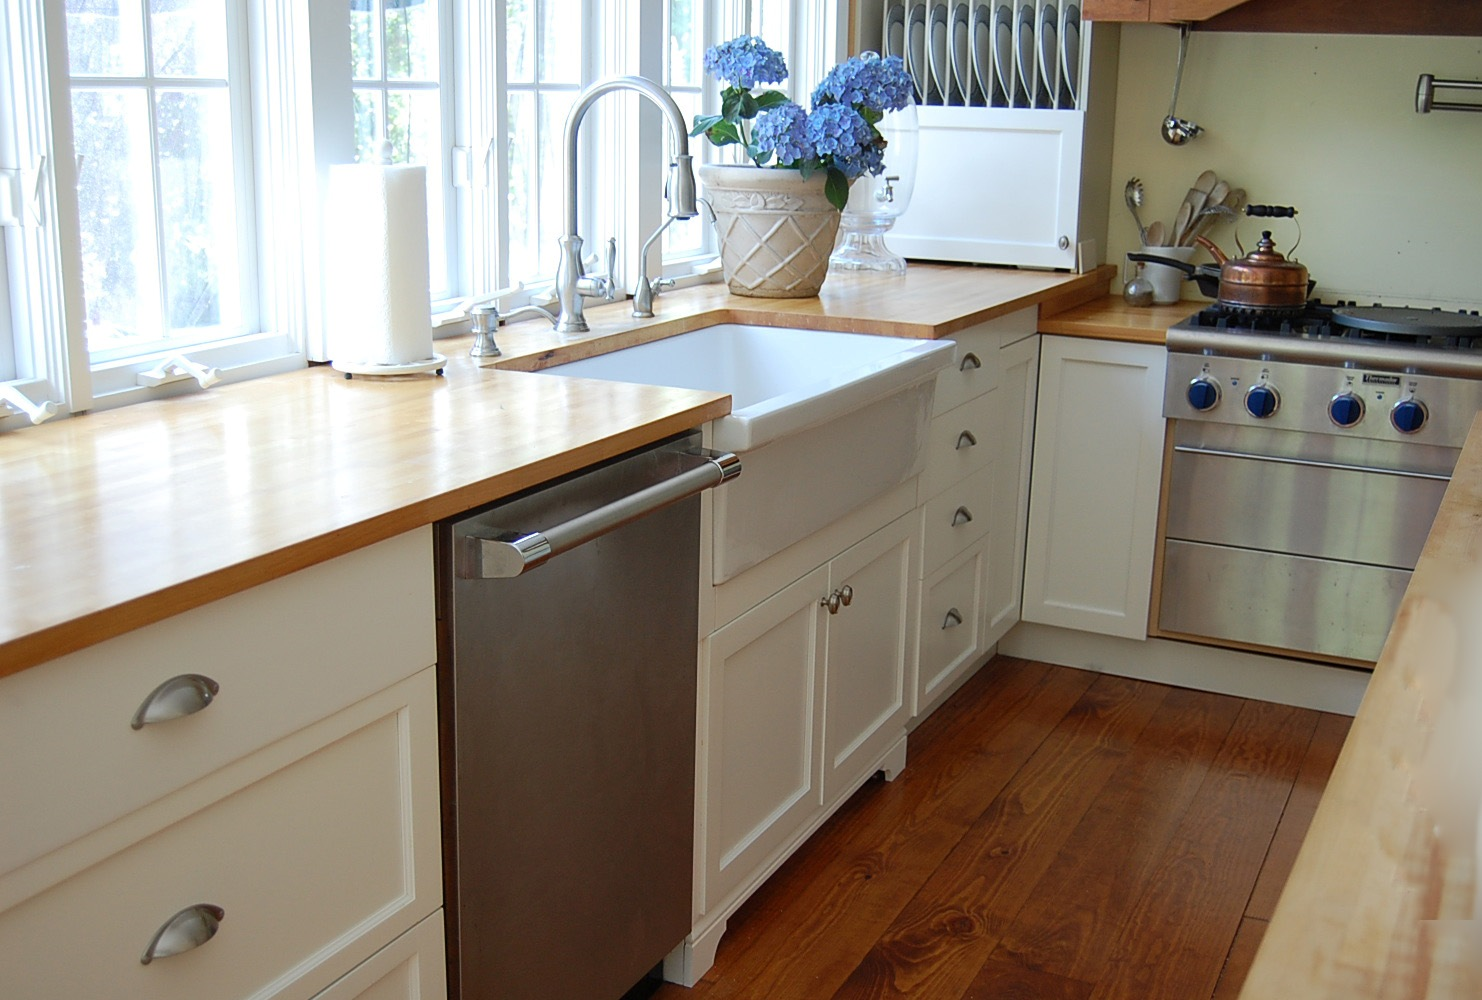 Ikea Kitchen Sink | Kitchen Ideas